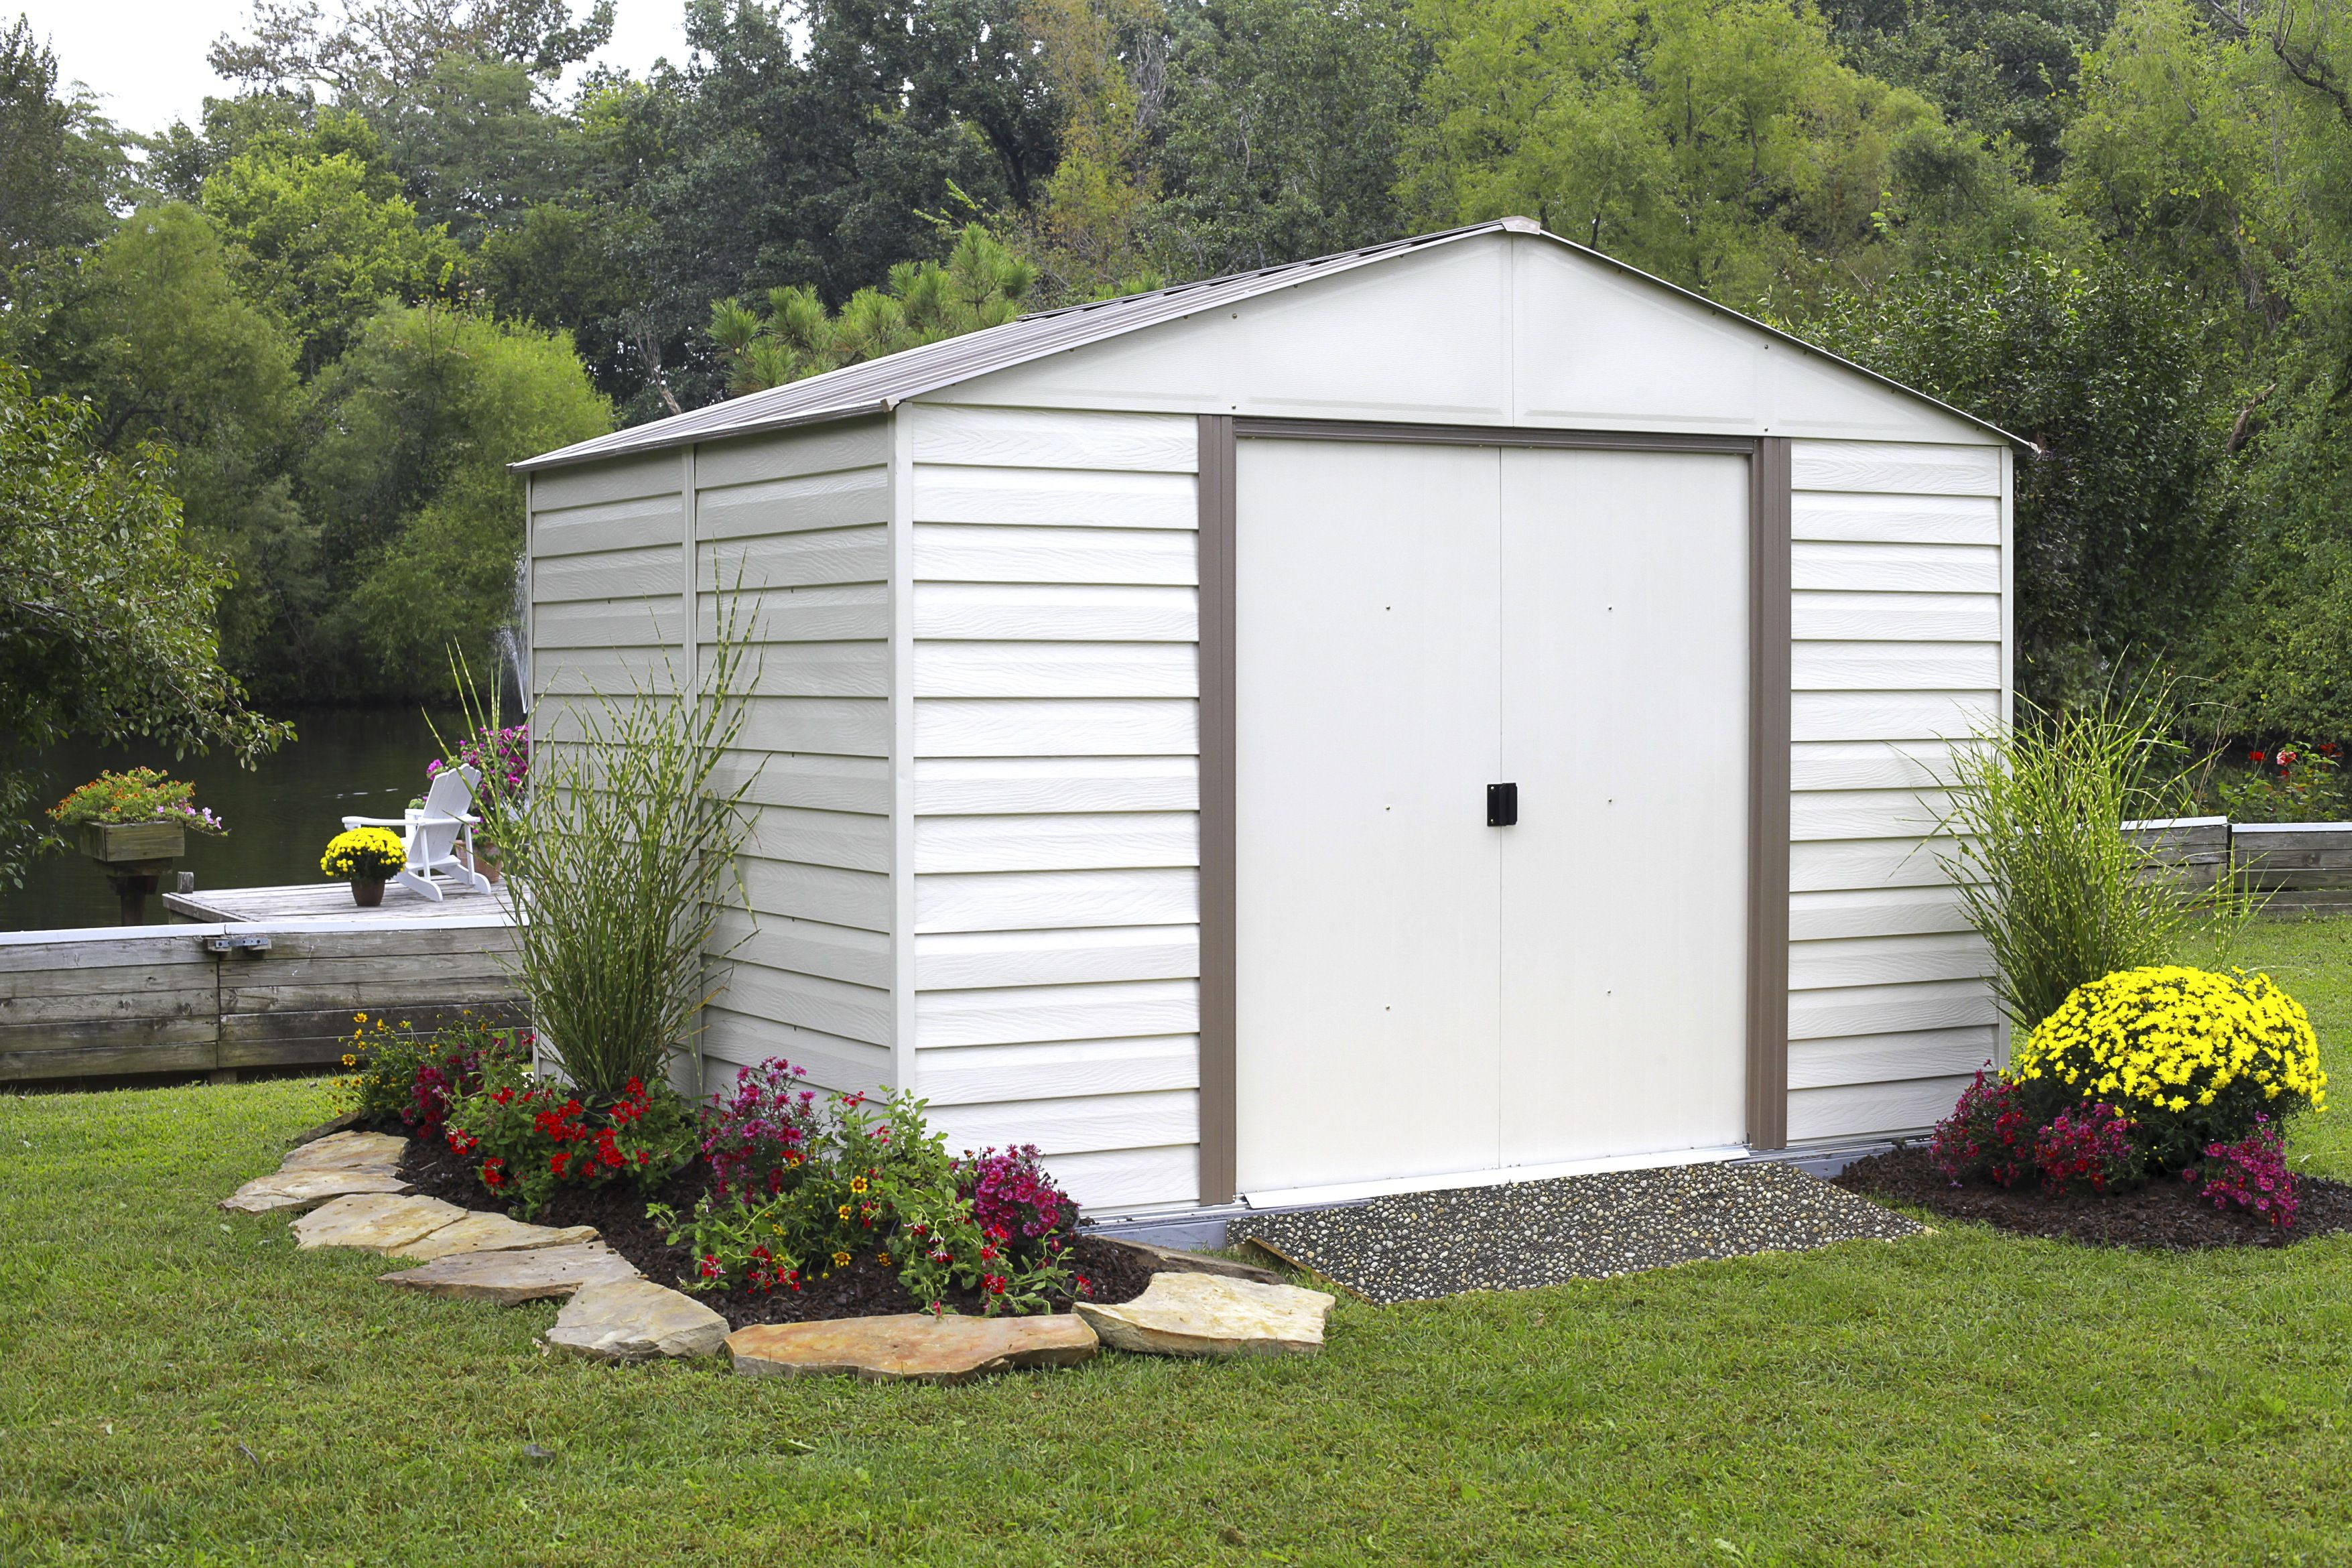 A Garden Shed For Almost Any Storage Need Vm108 Vm1012 Http Www Arrowsheds Com Premiumsheds Vinylmilfor Insulating A Shed Metal Storage Sheds Shed Storage